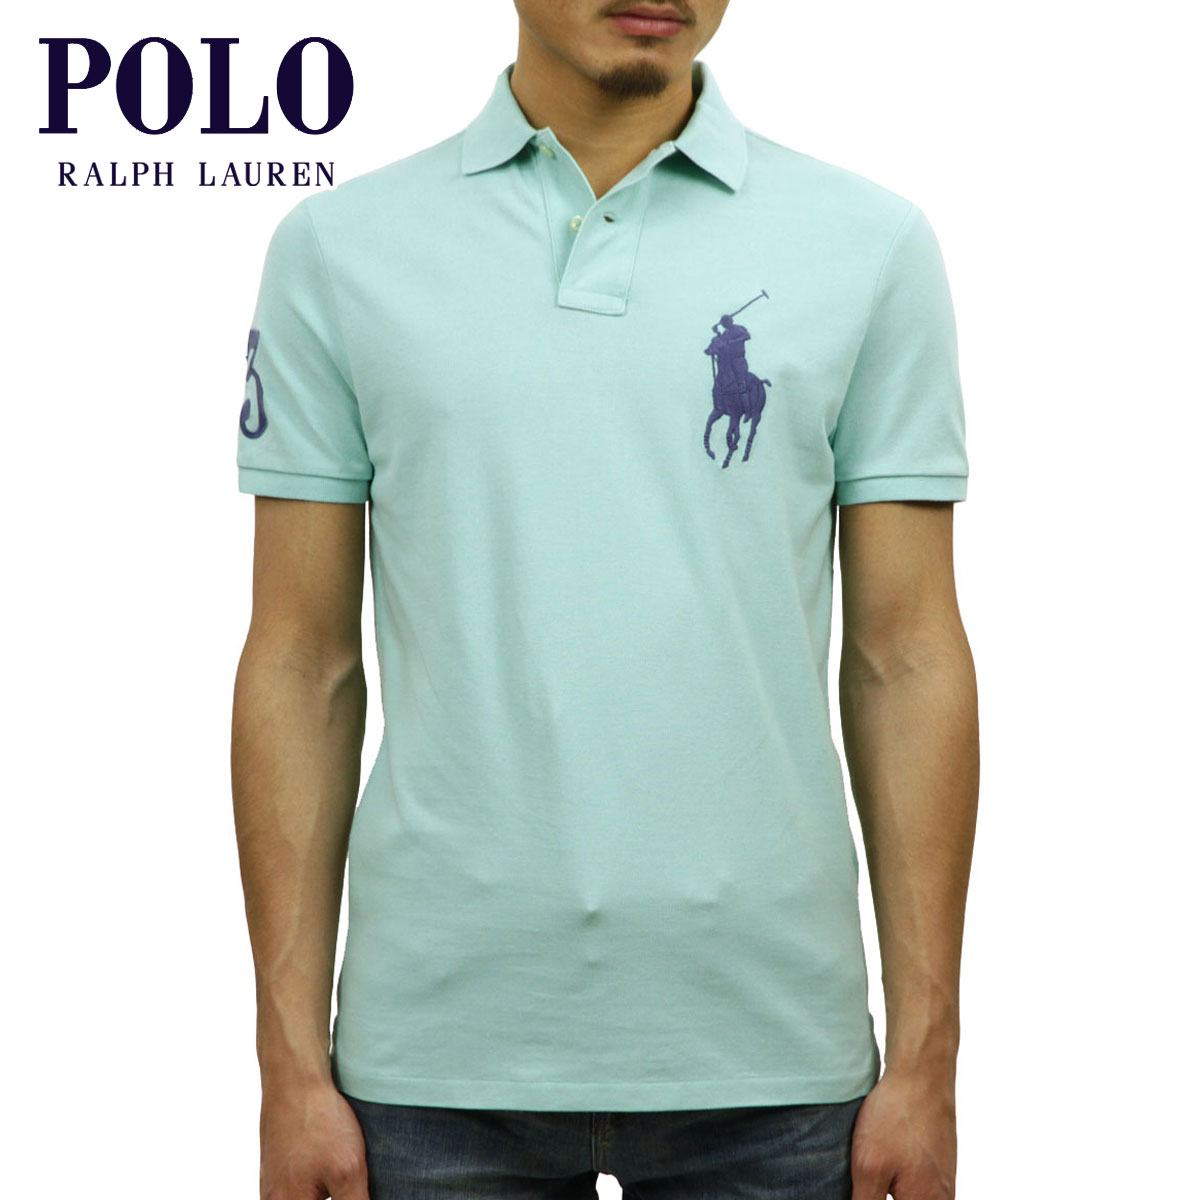 e358f08af398c Polo Ralph Lauren POLO RALPH LAUREN regular article men custom slim fitting  big pony short sleeves ...